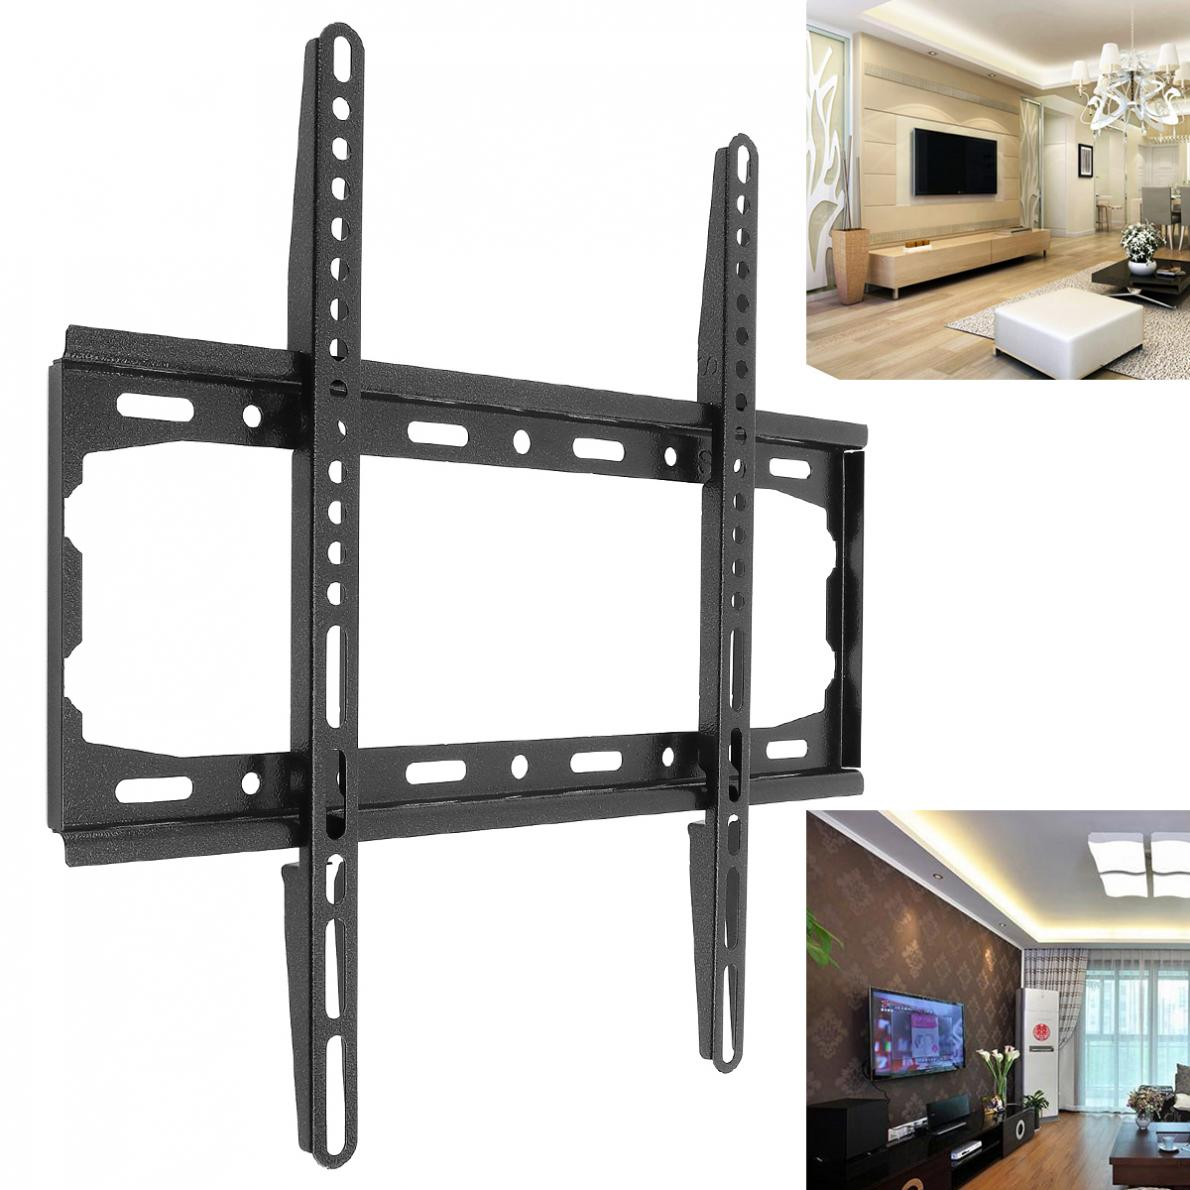 Universal 45KG TV Wall Mount Bracket Fixed Flat Panel TV Frame For 26 55 Inch LCD LED Monitor